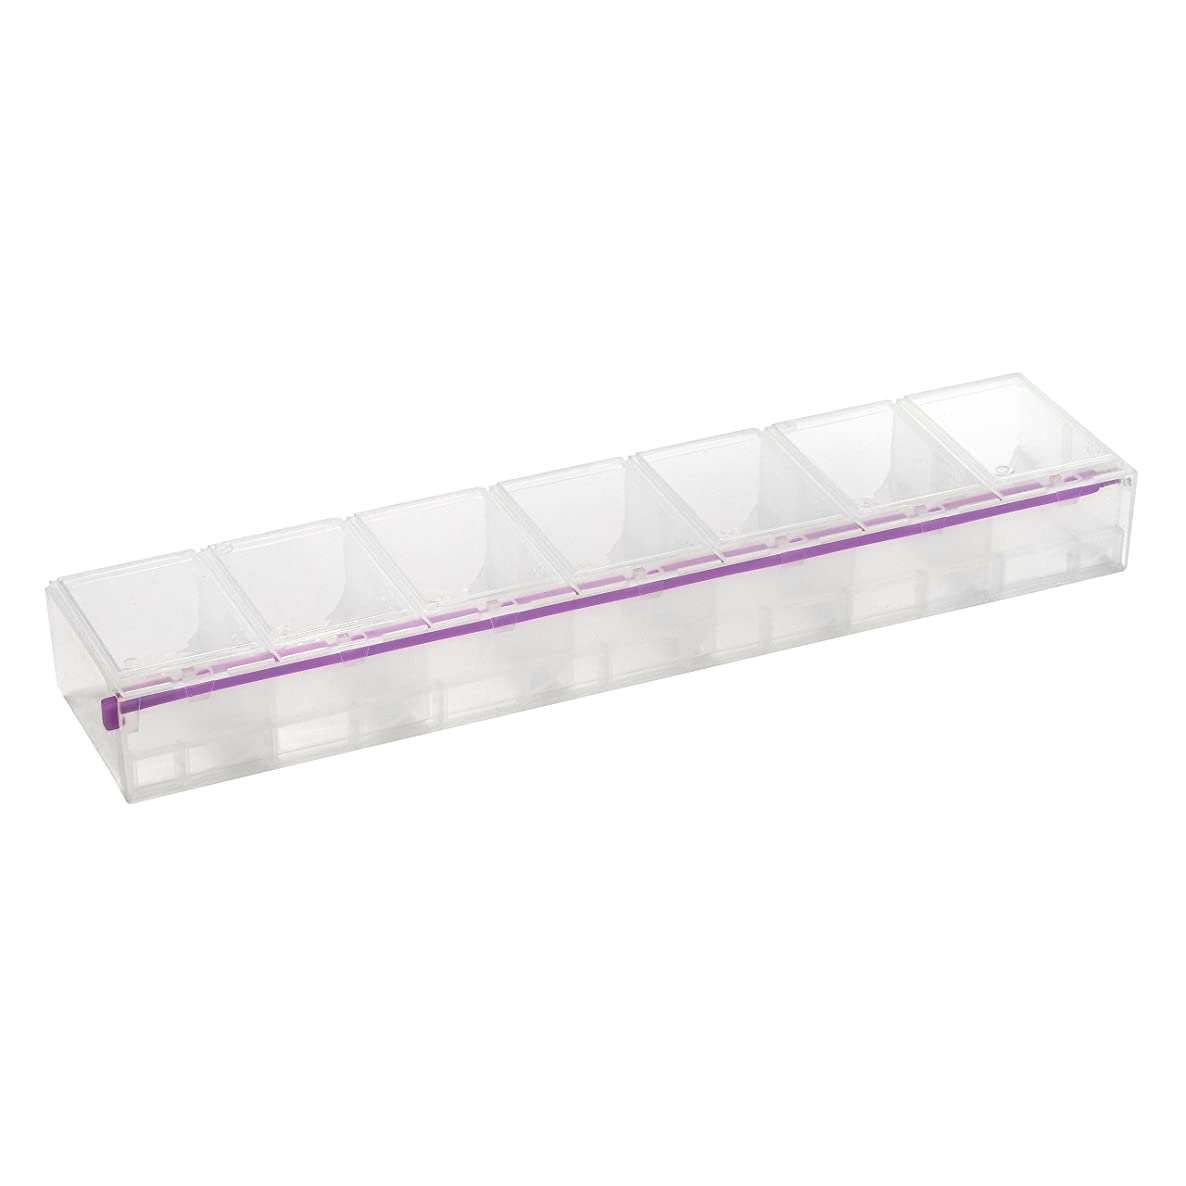 Craft Mates Lockables Triple Extra Large (3 XL) Organizer with Seven (7) Locking Compartments